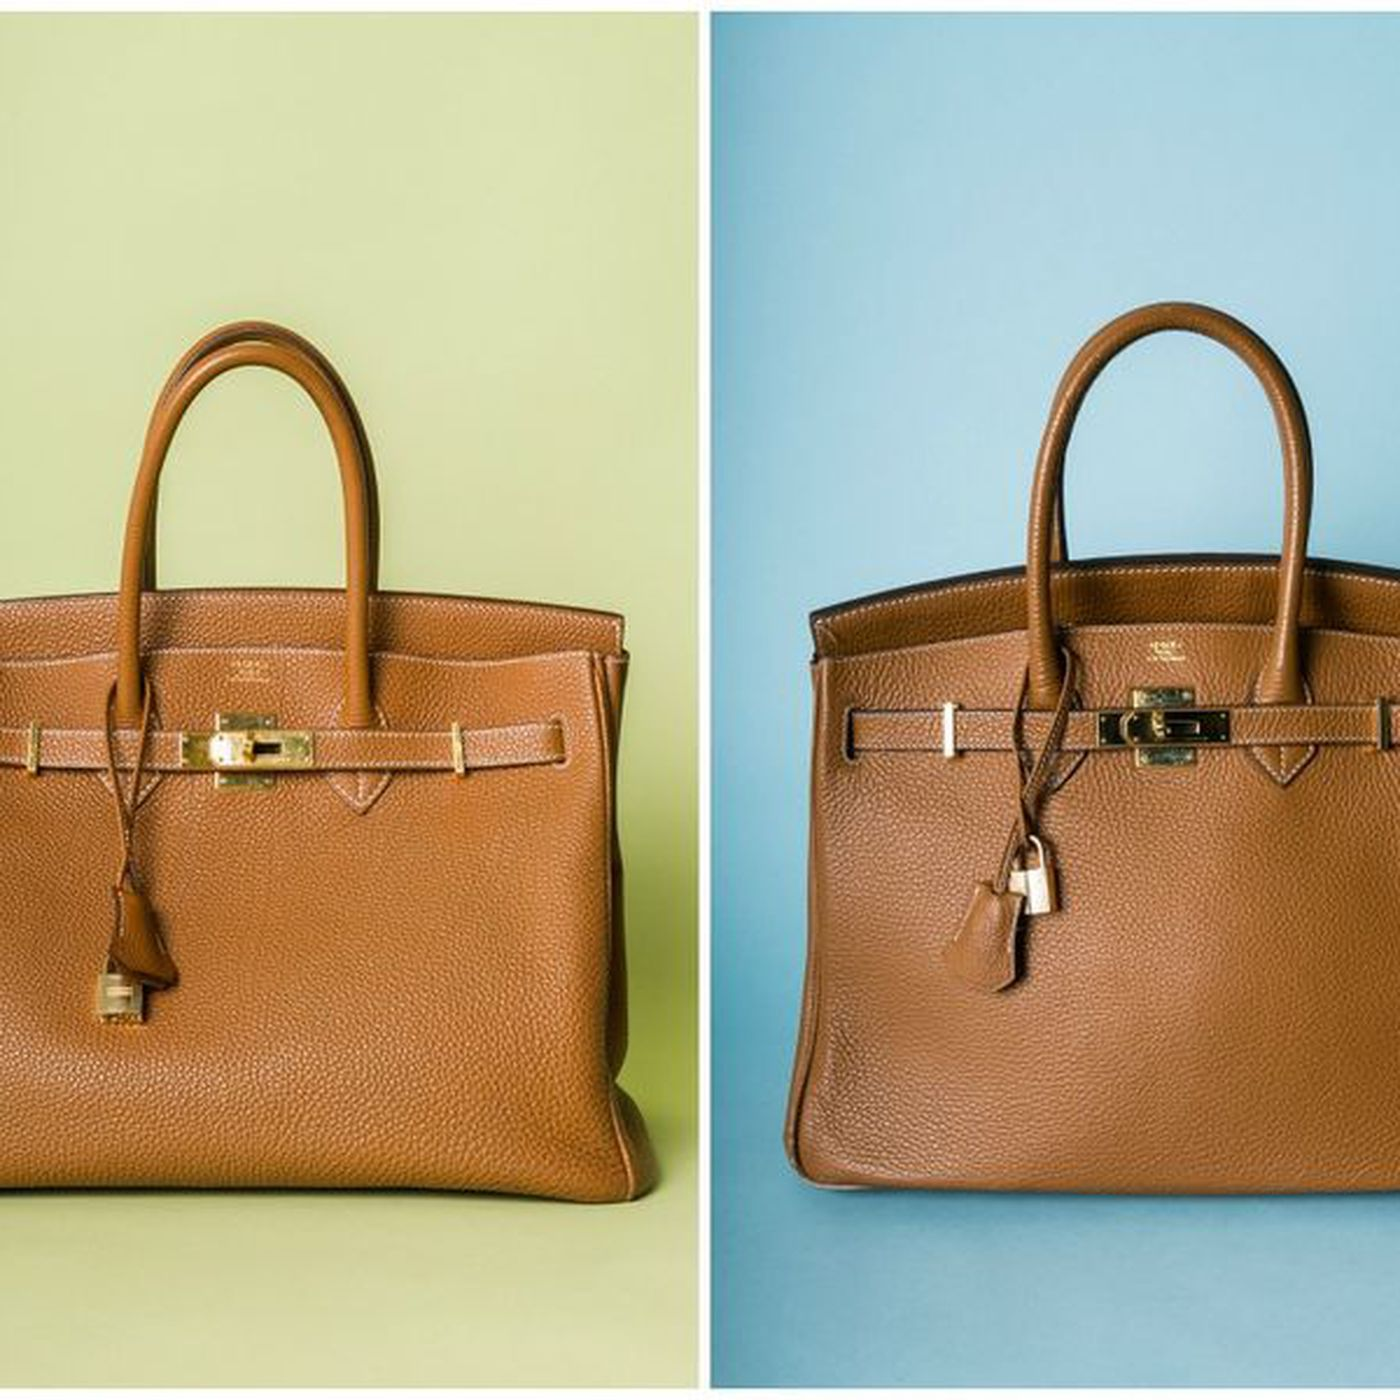 7c862b200671 Here s How to Spot the Difference Between Real and Fake Designer Bags -  Racked